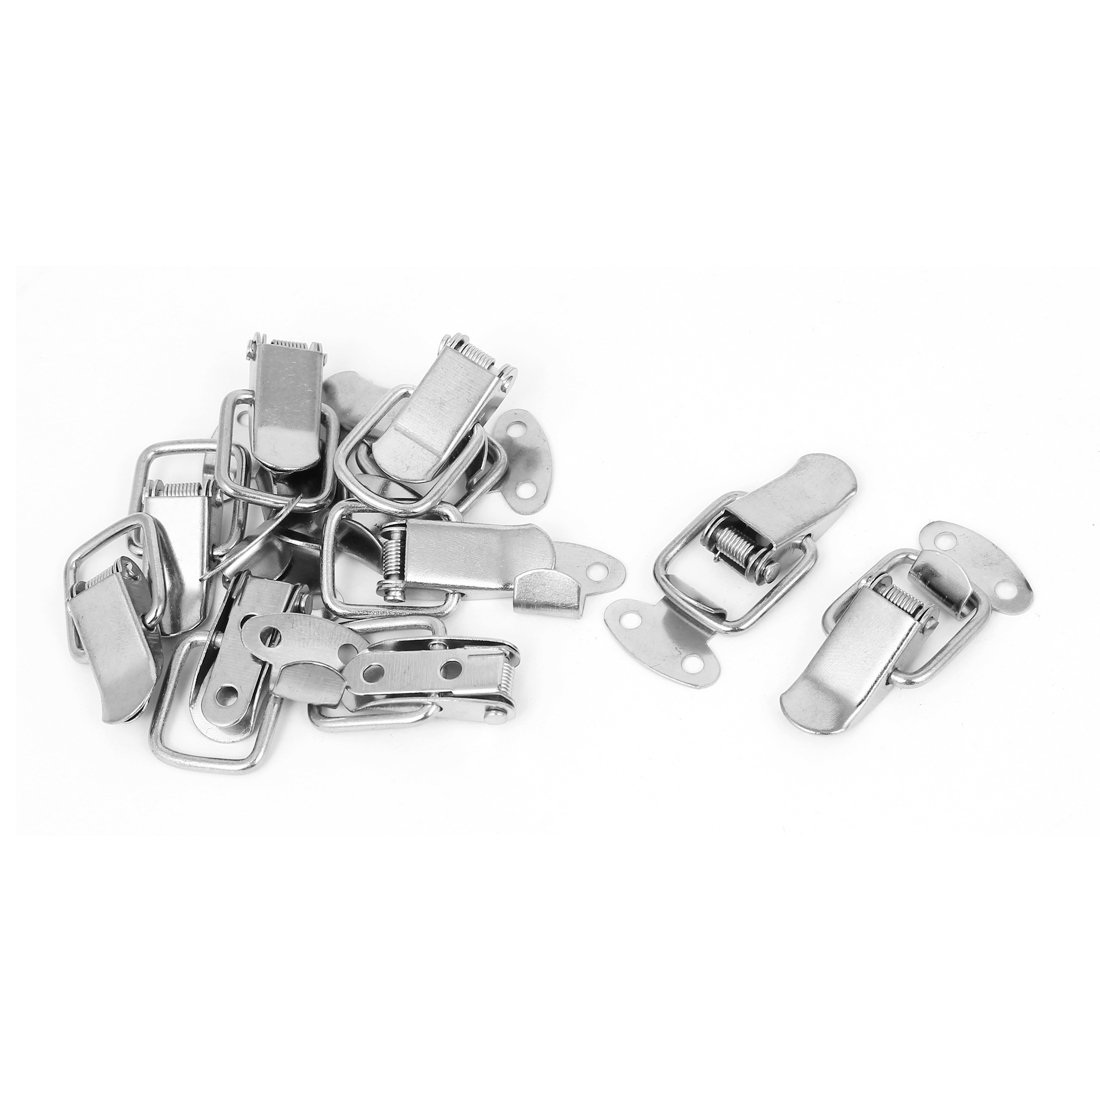 uxcell/® Toolbox Box Spring Loaded Straight Loop Toggle Catch Latch Hasp 8pcs